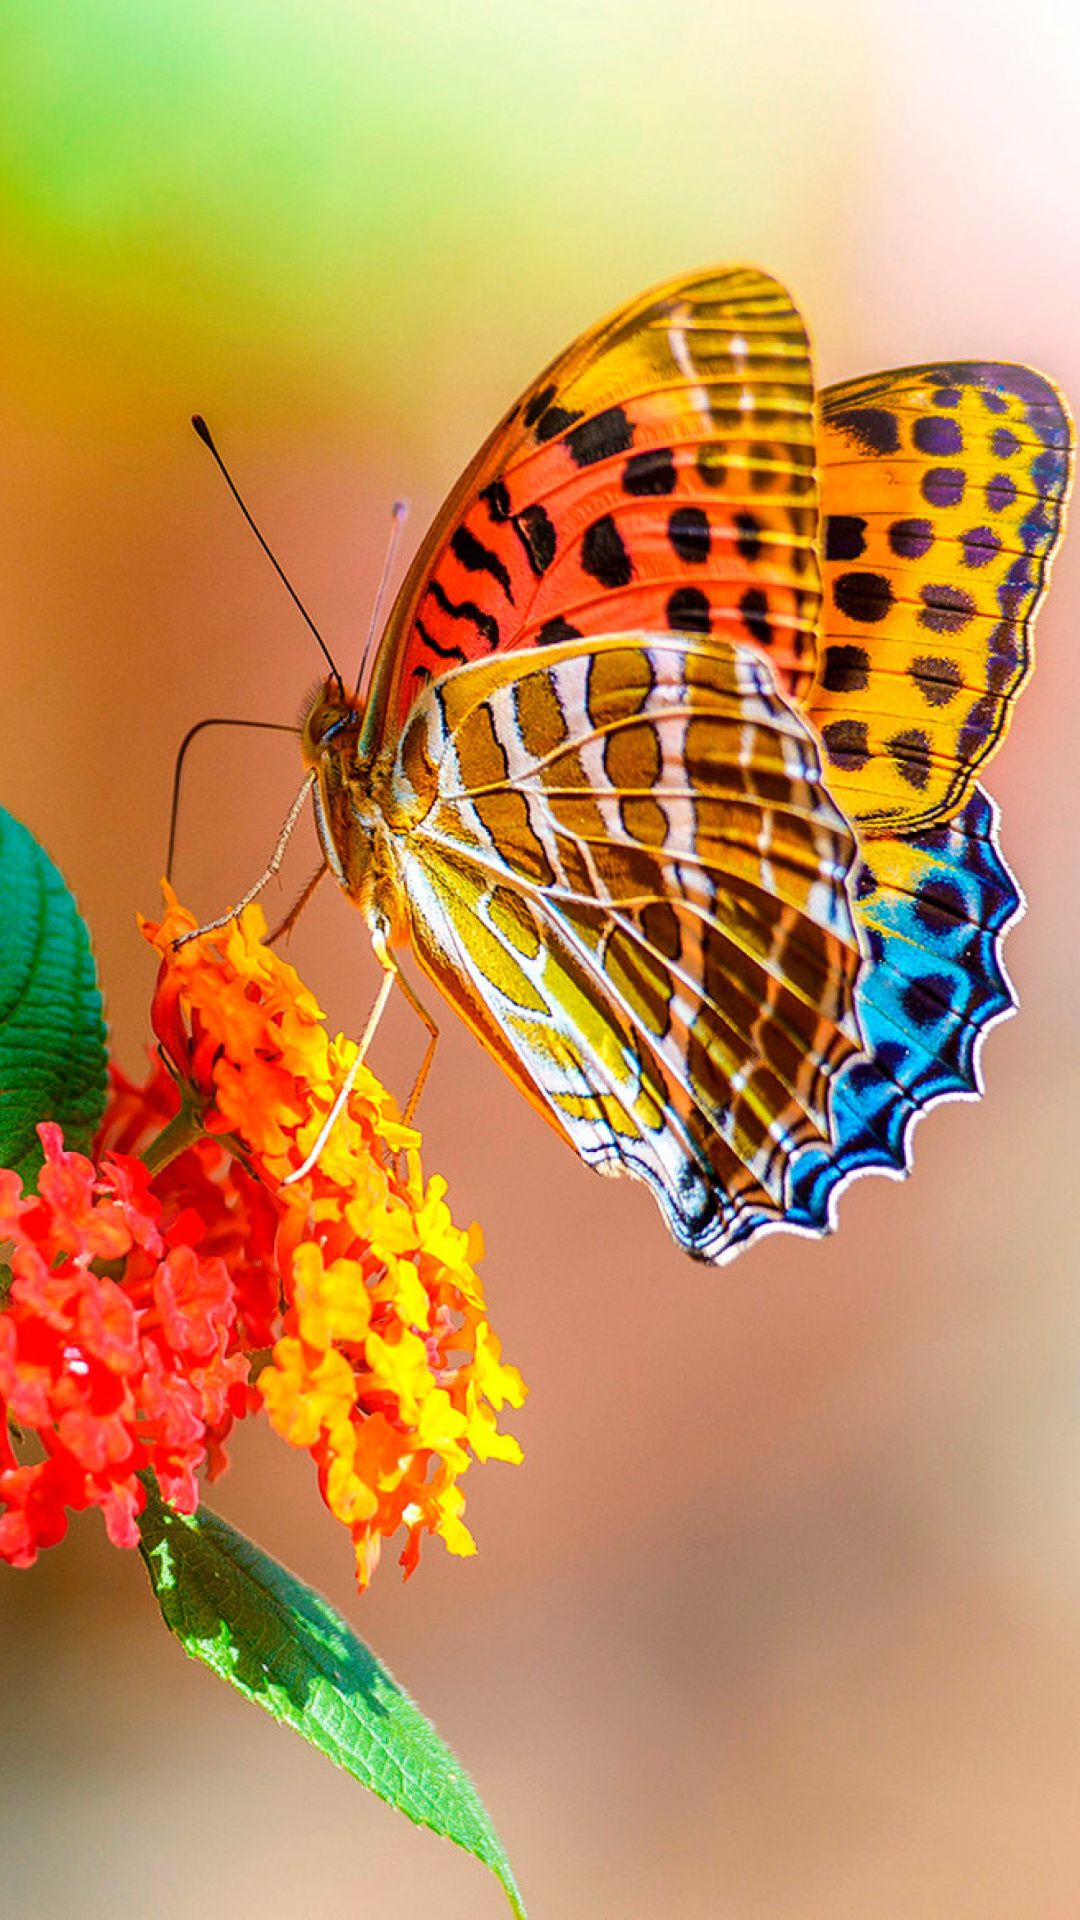 Colorful Animated Butterfly Wallpaper For